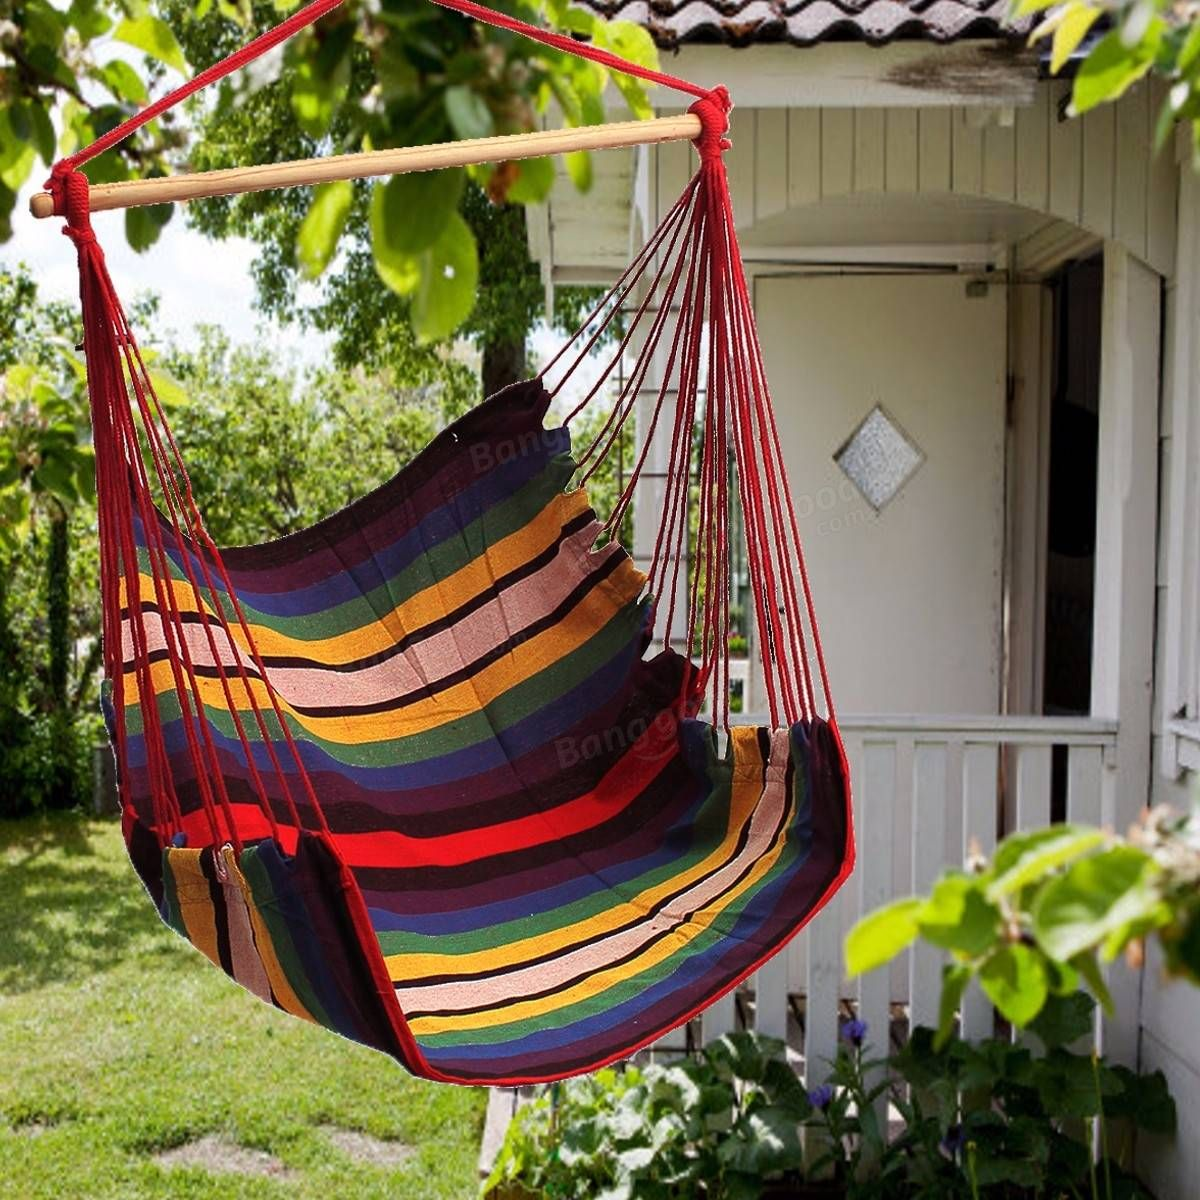 Mattresses why not hanging on the balcony garden compact seating - Garden Patio Hanging Thicken Hammock Chair Indoor Outdoor Cotton Swing Cushion Seat